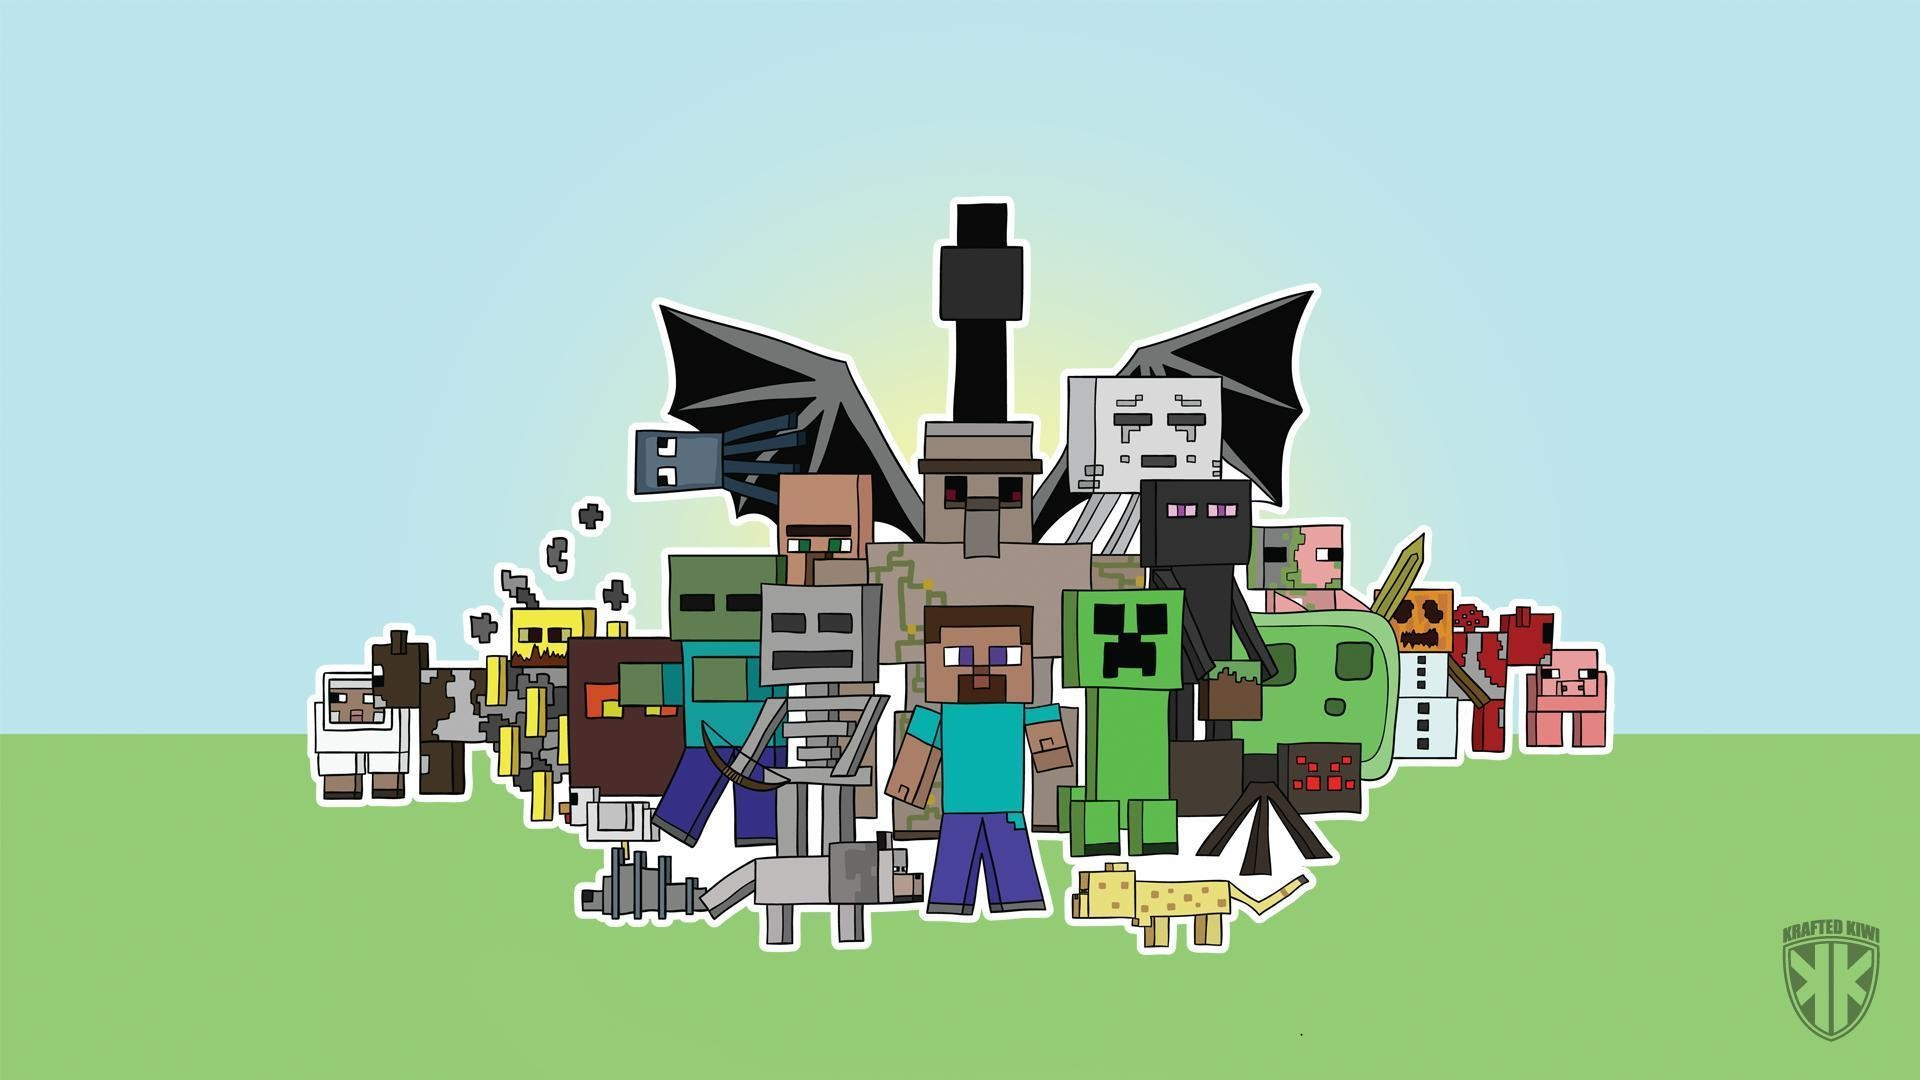 1920x1080 Wallpaper Generator with skins Other Fan Art Fan Art Show Minecraft  Wallpapers Creator Wallpapers)